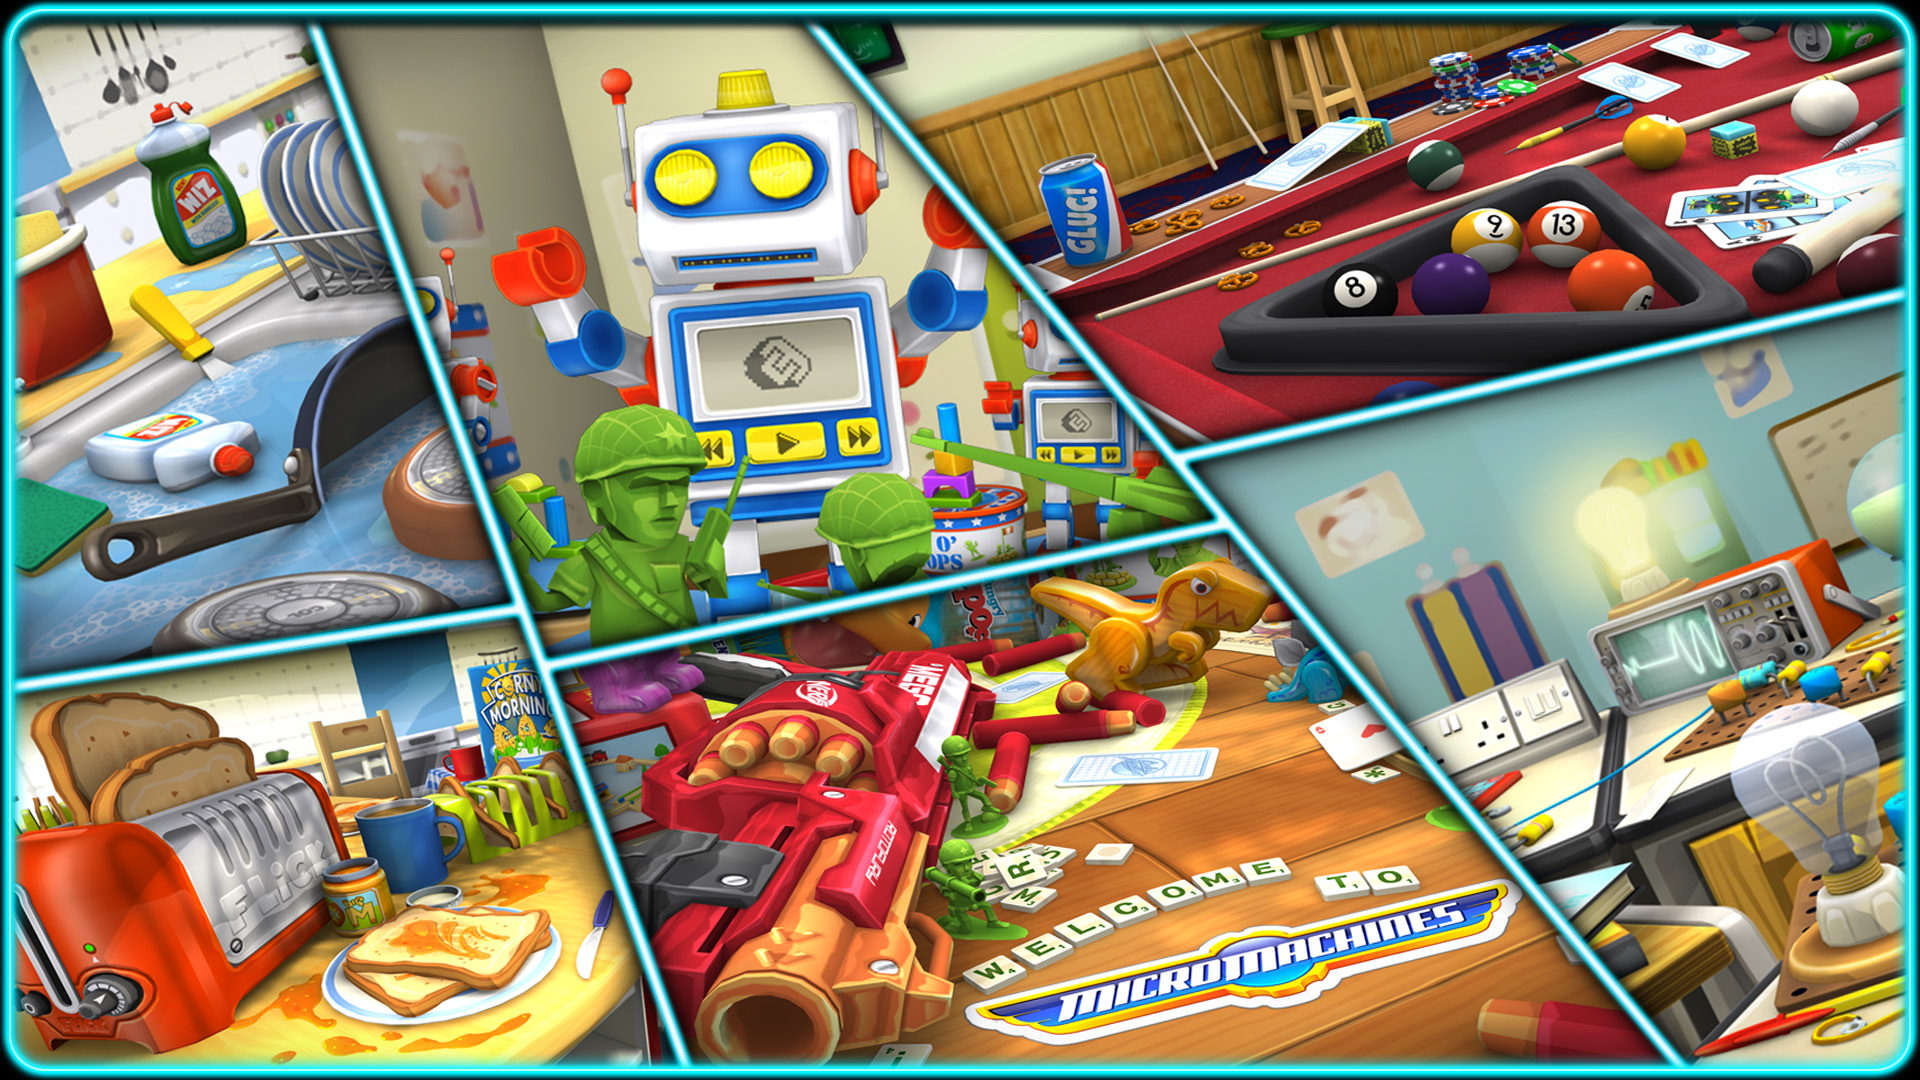 Micro Machines is skidding onto iPad and iPhone later this year thanks to Codemasters and Chillingo